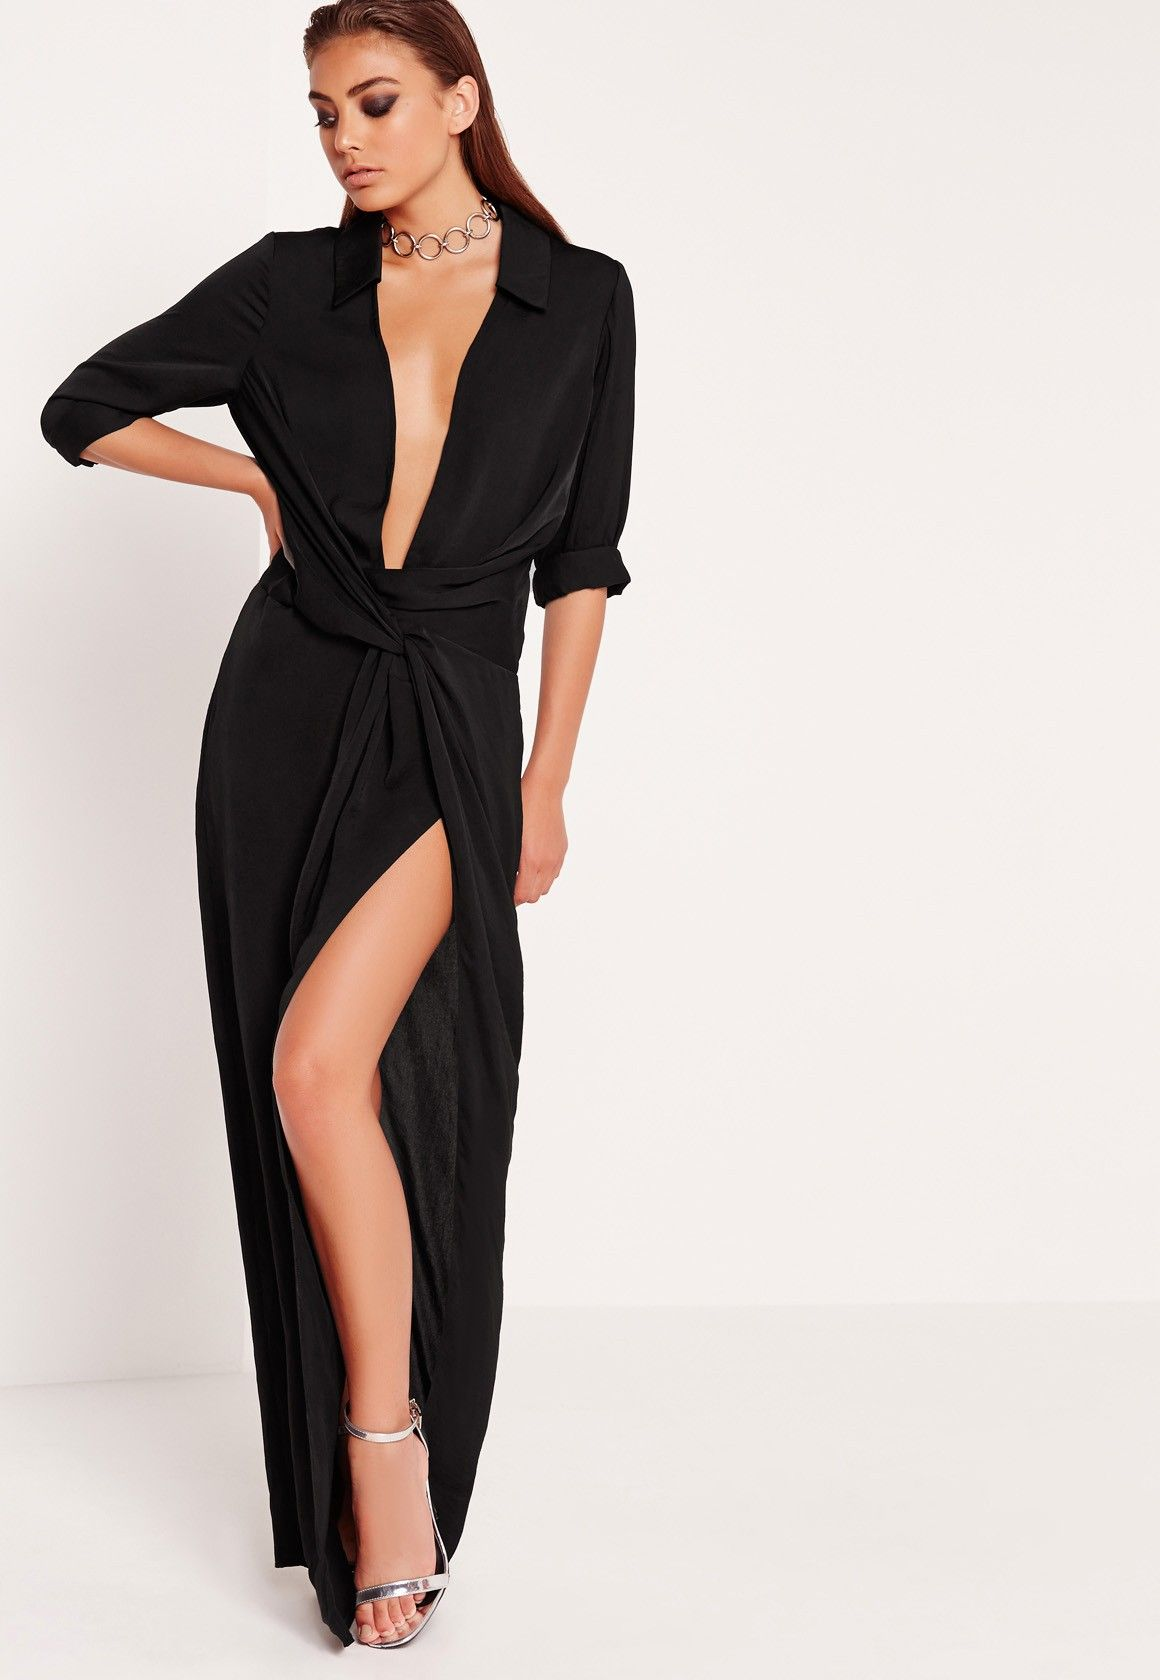 02a1ad55bba Missguided - Peace Love Wrap Front Shirt Maxi Dress Black